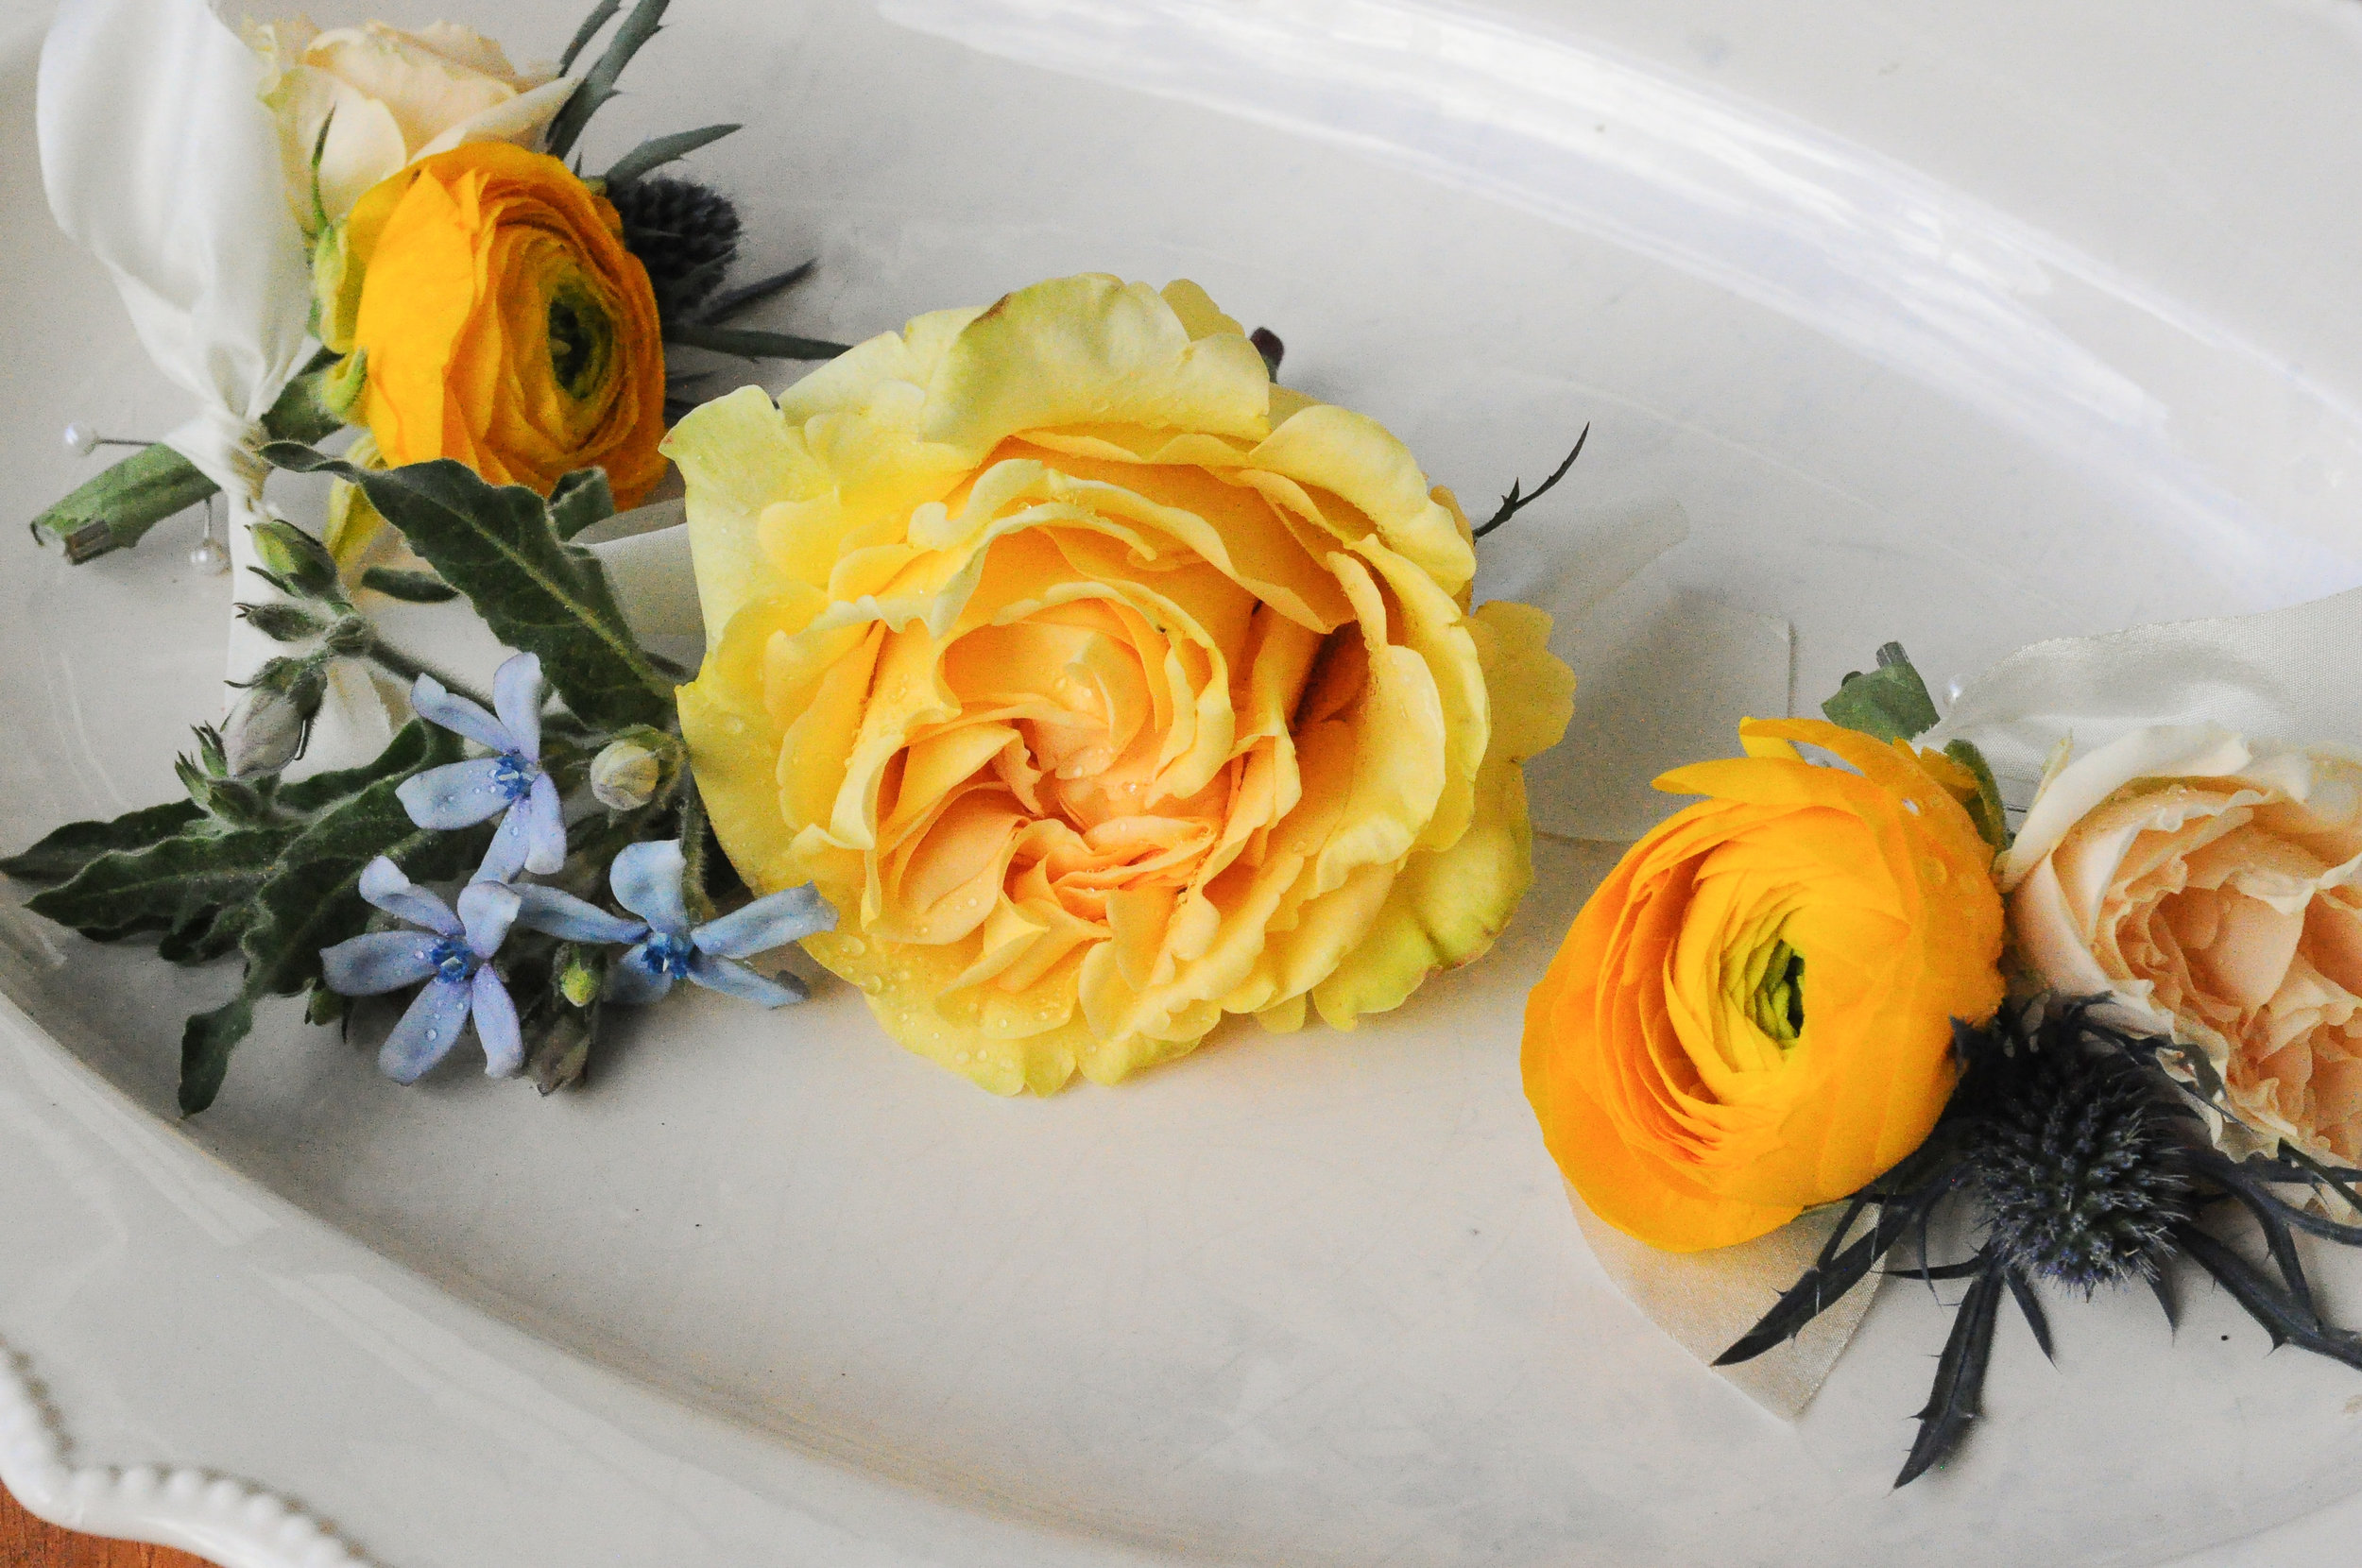 These cute little bouts were similarly made of thistle, ranunculus and roses.